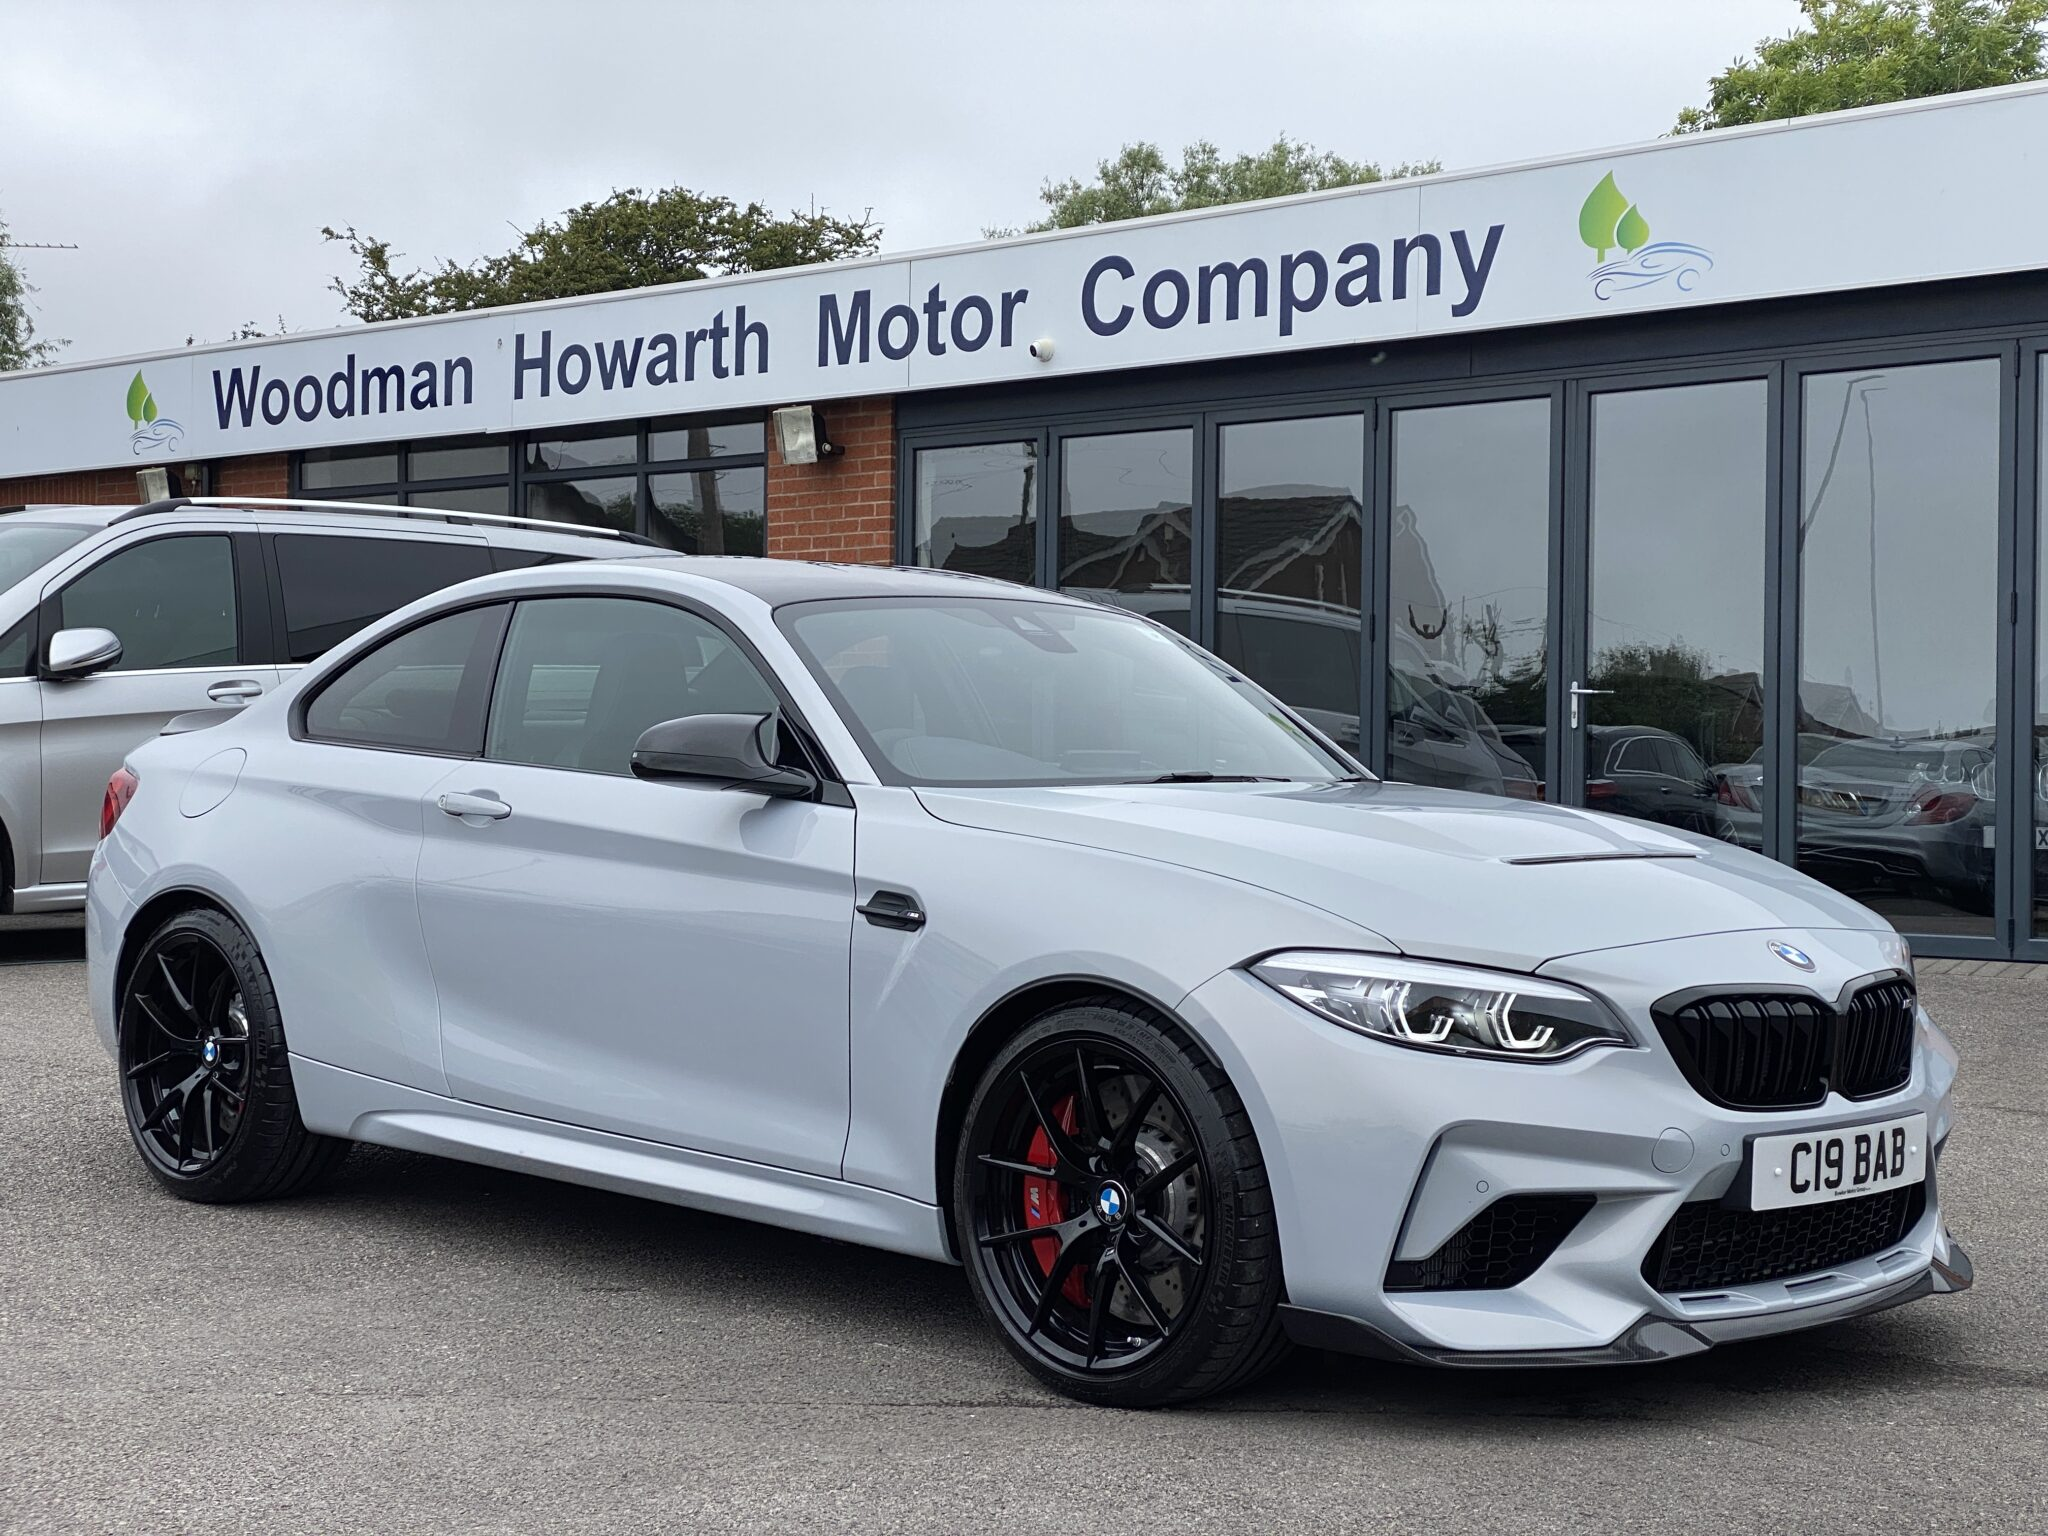 2021 70 BMW M2 CS COUPE DCT 1 Owner Only 2K Miles Very Rare Car